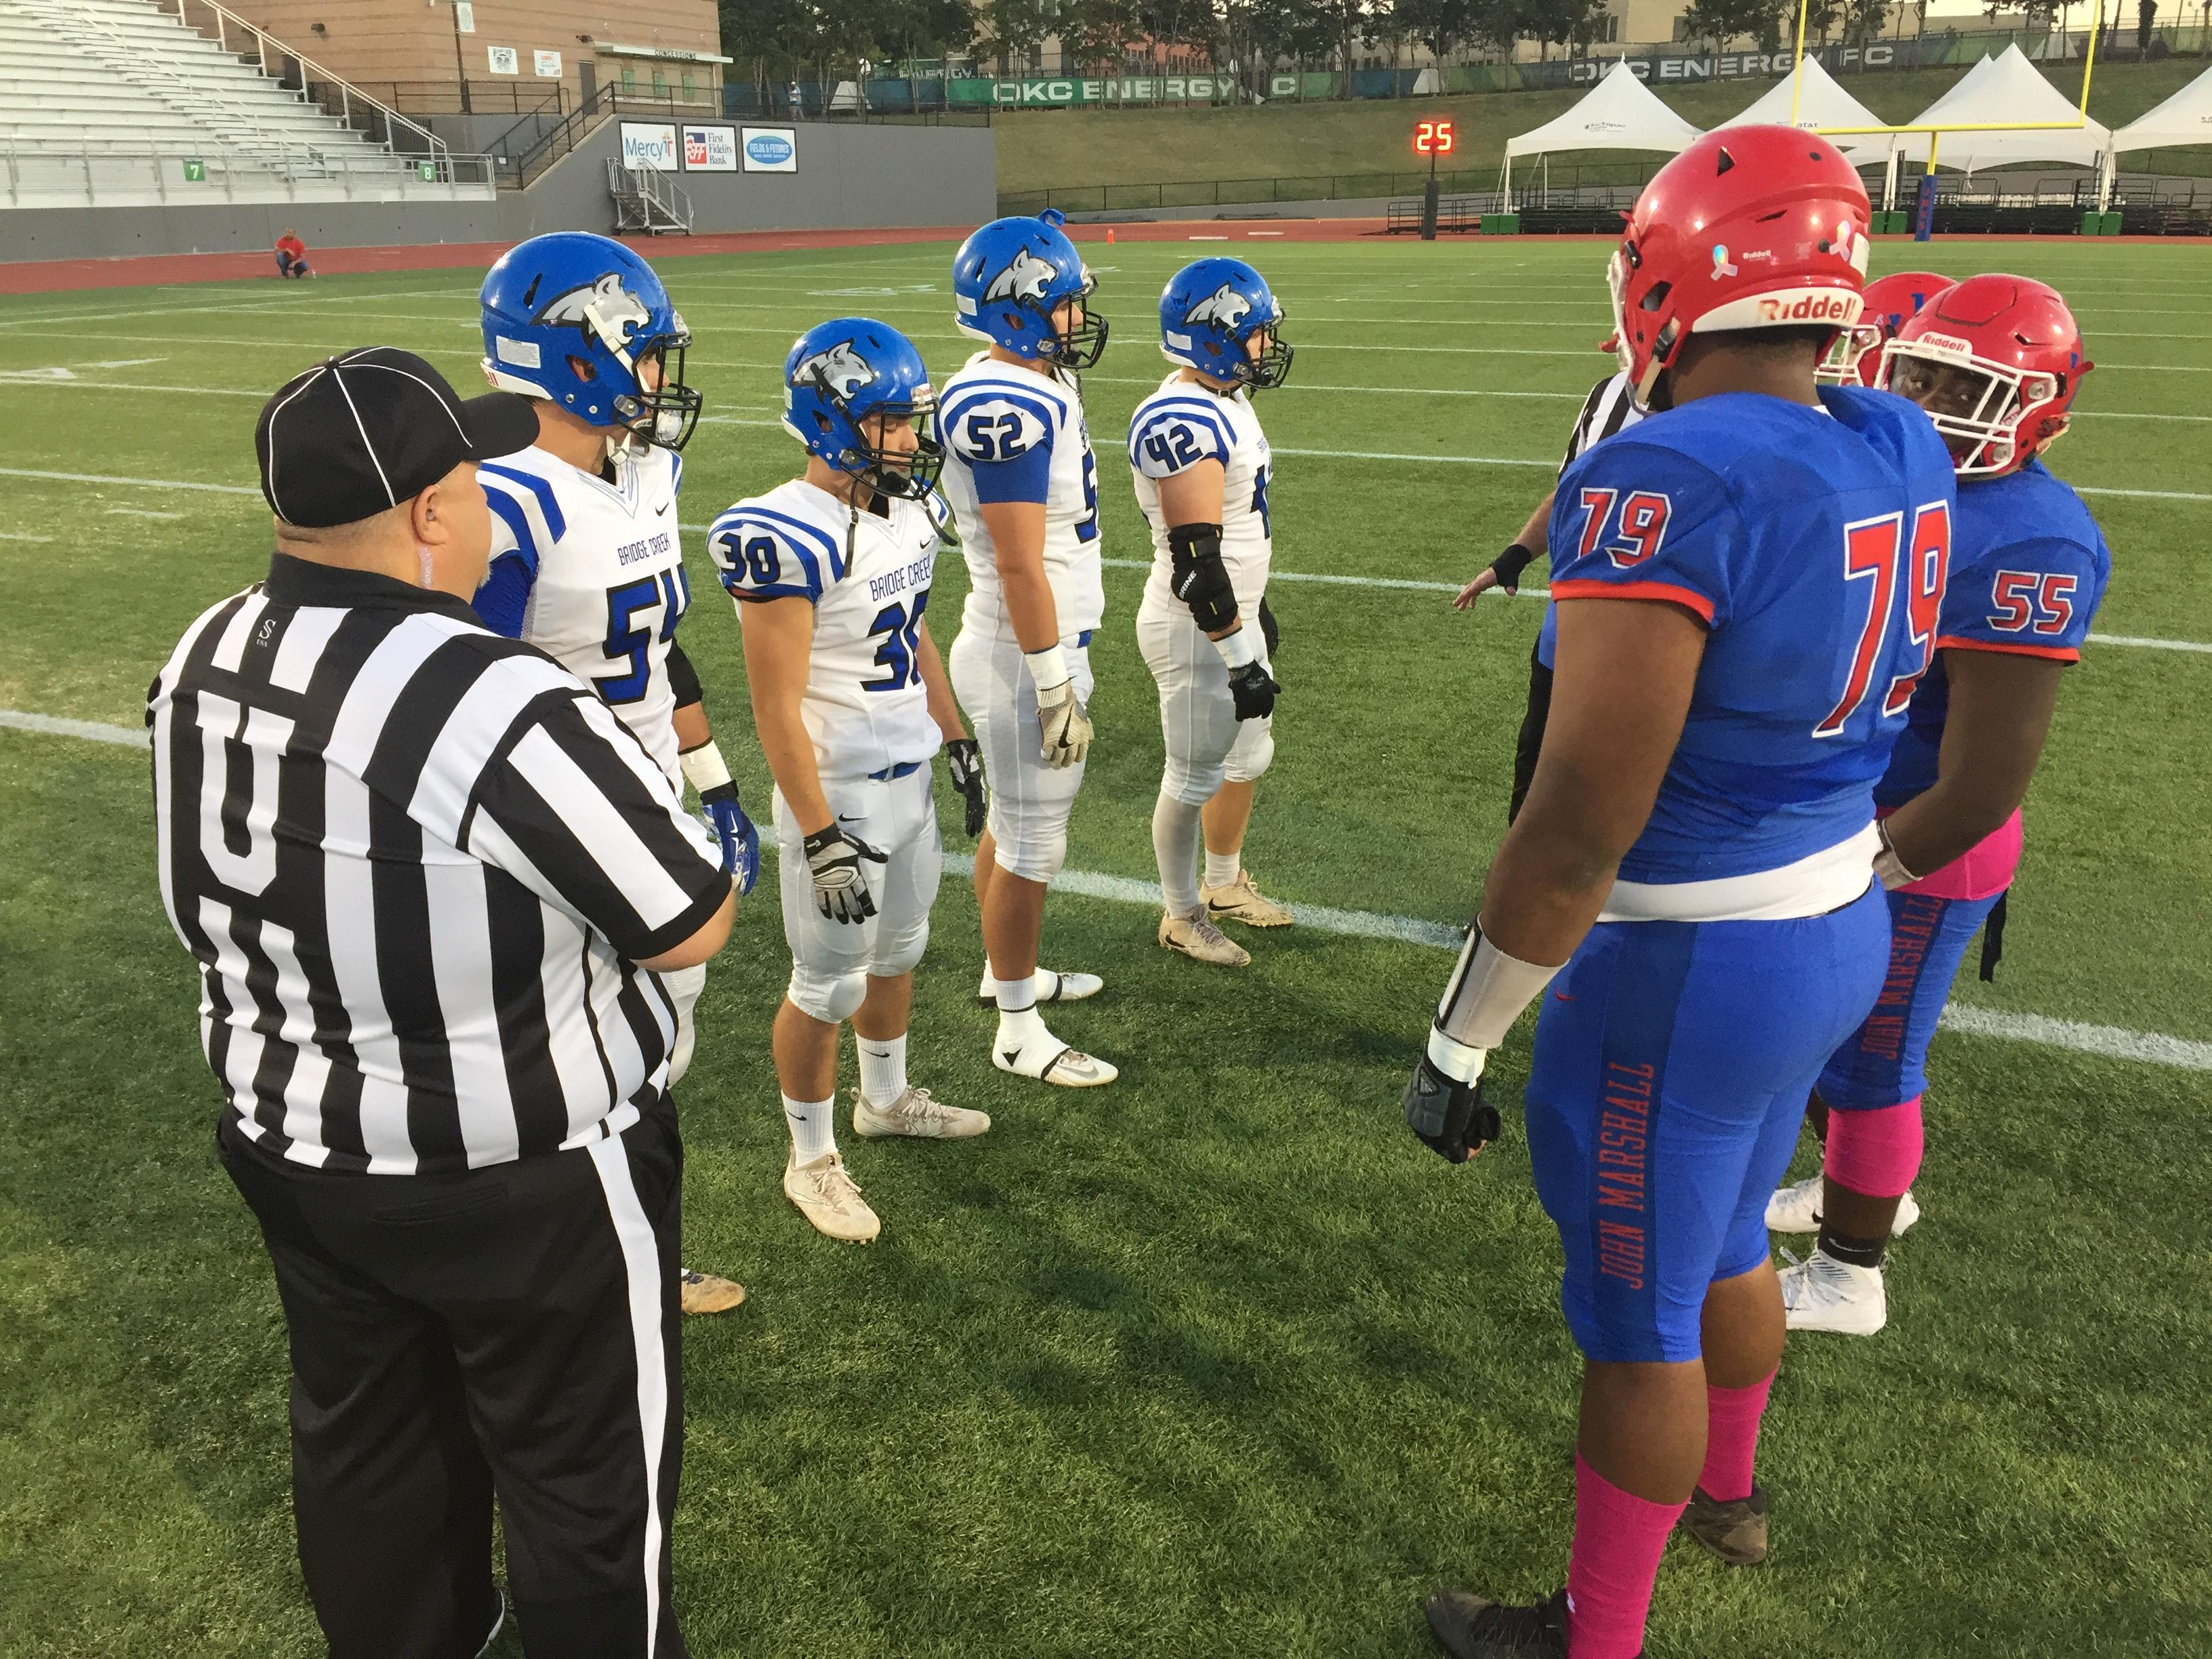 Players from the Bridge Creek Bobcats and John Marshall Bears meet on the field for the coin toss prior to their game during week 7 of high school football on Friday, October 13, 2017. (David Young / KOKH)<p></p>